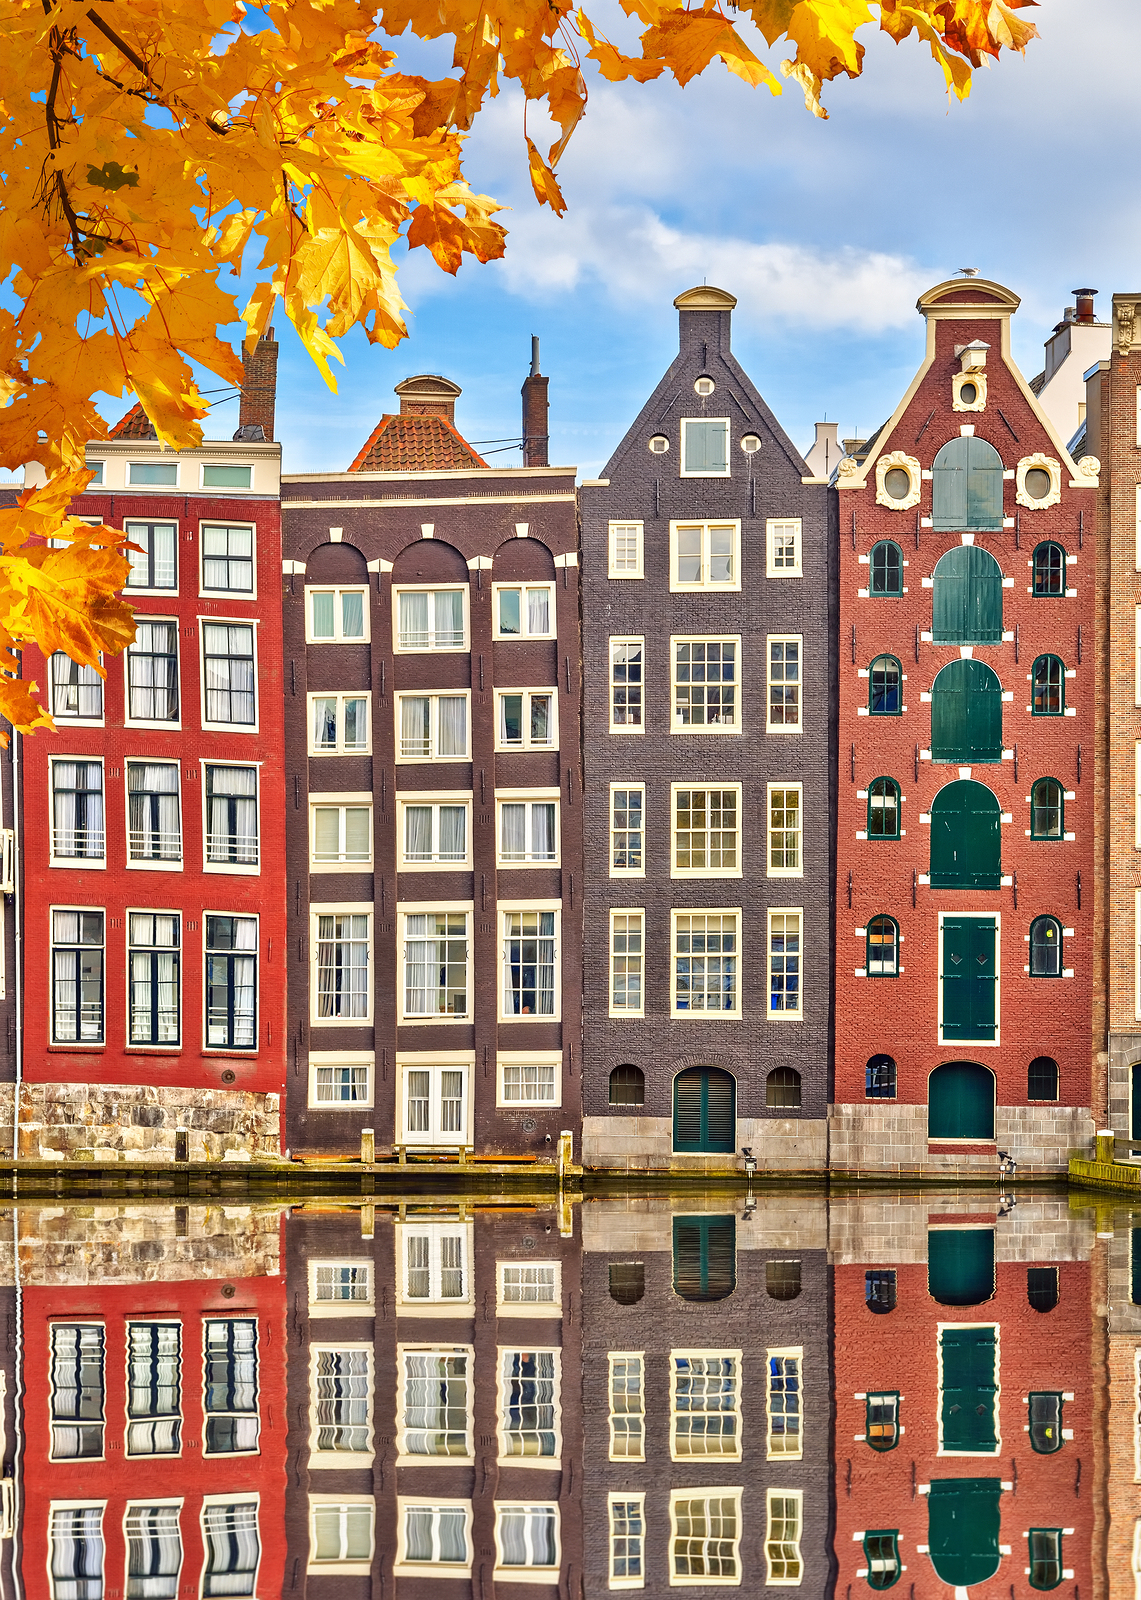 Shandon travel student leap card ezine offers for Architecture firm amsterdam